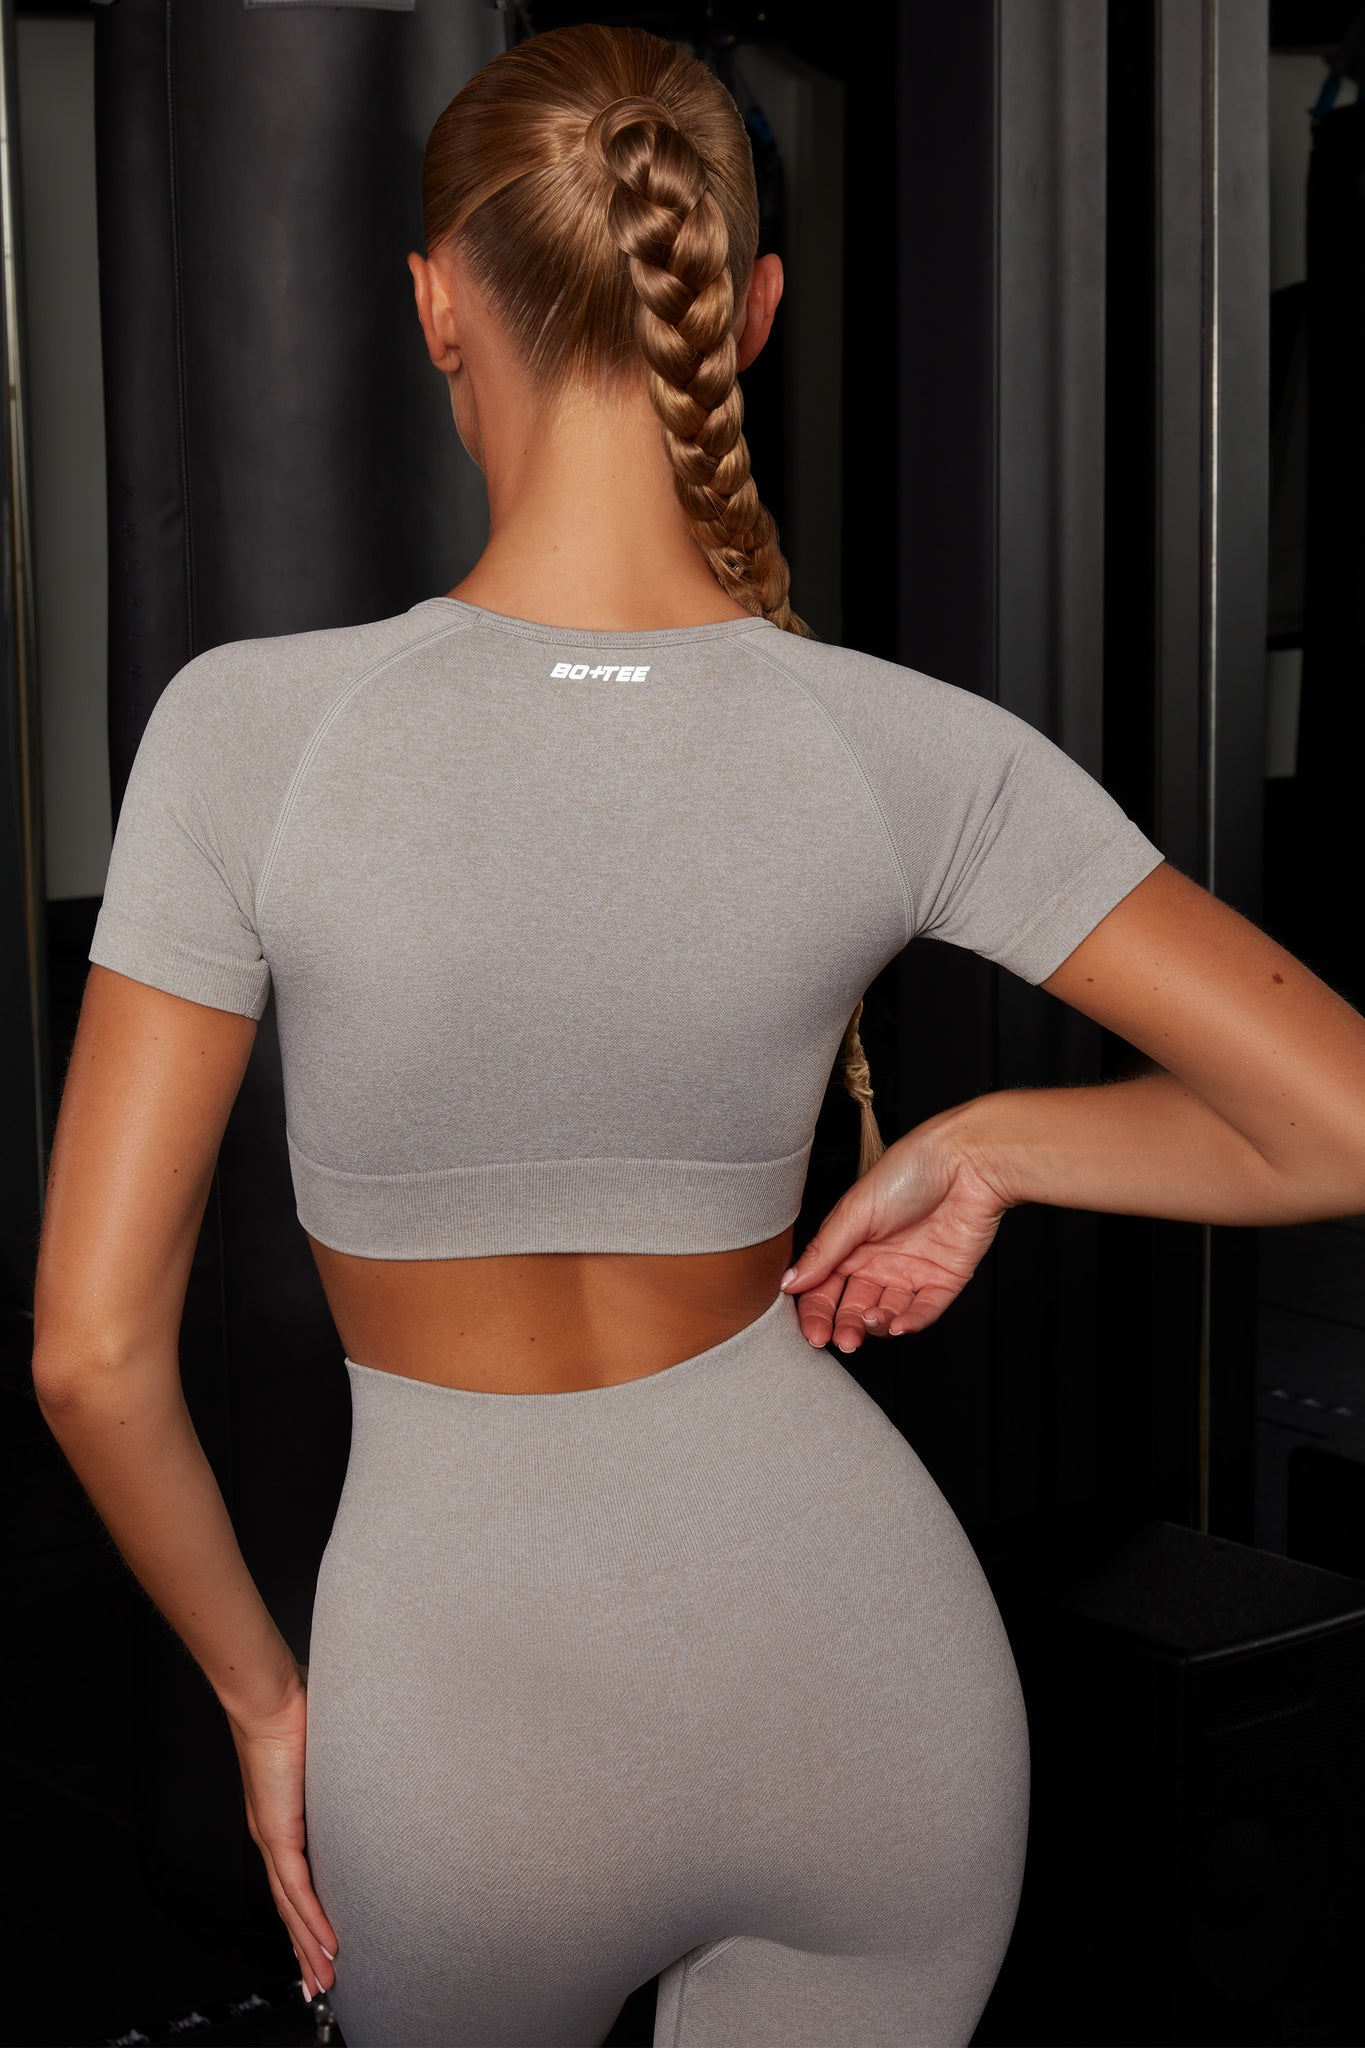 Plain light grey melange round neck crop top with ribbed underband, reflective branding and short sleeves. Image 3 of 6.